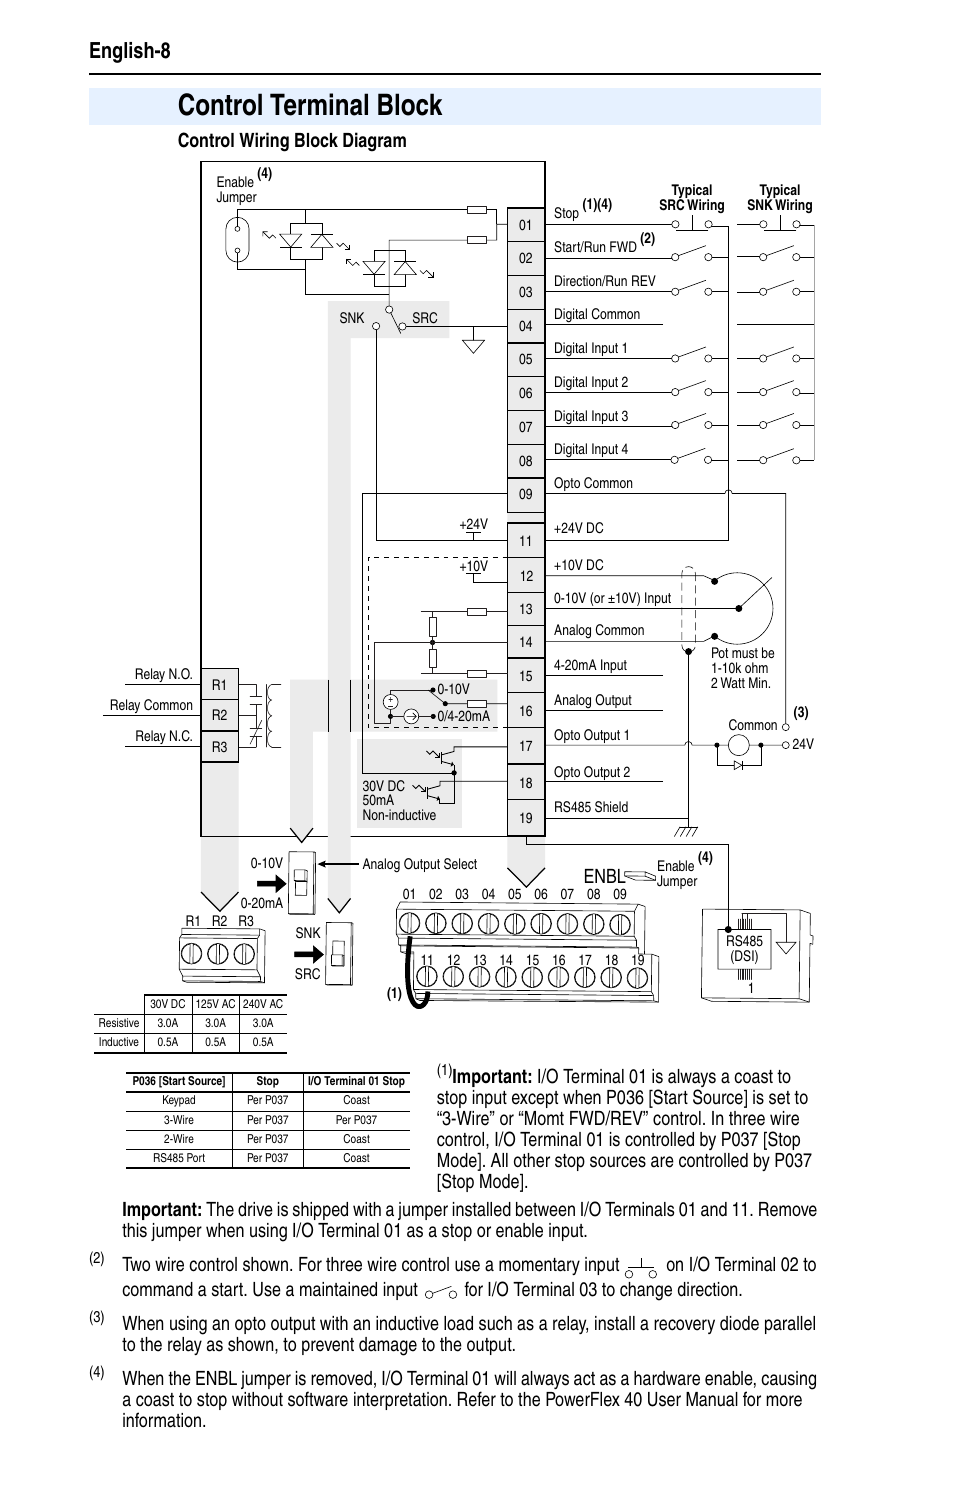 Analog Wiring Diagram For Powerflex 40 Will Be A 70 Control Terminal Block English 8 Rh Manualsdir Com 4 Schematic